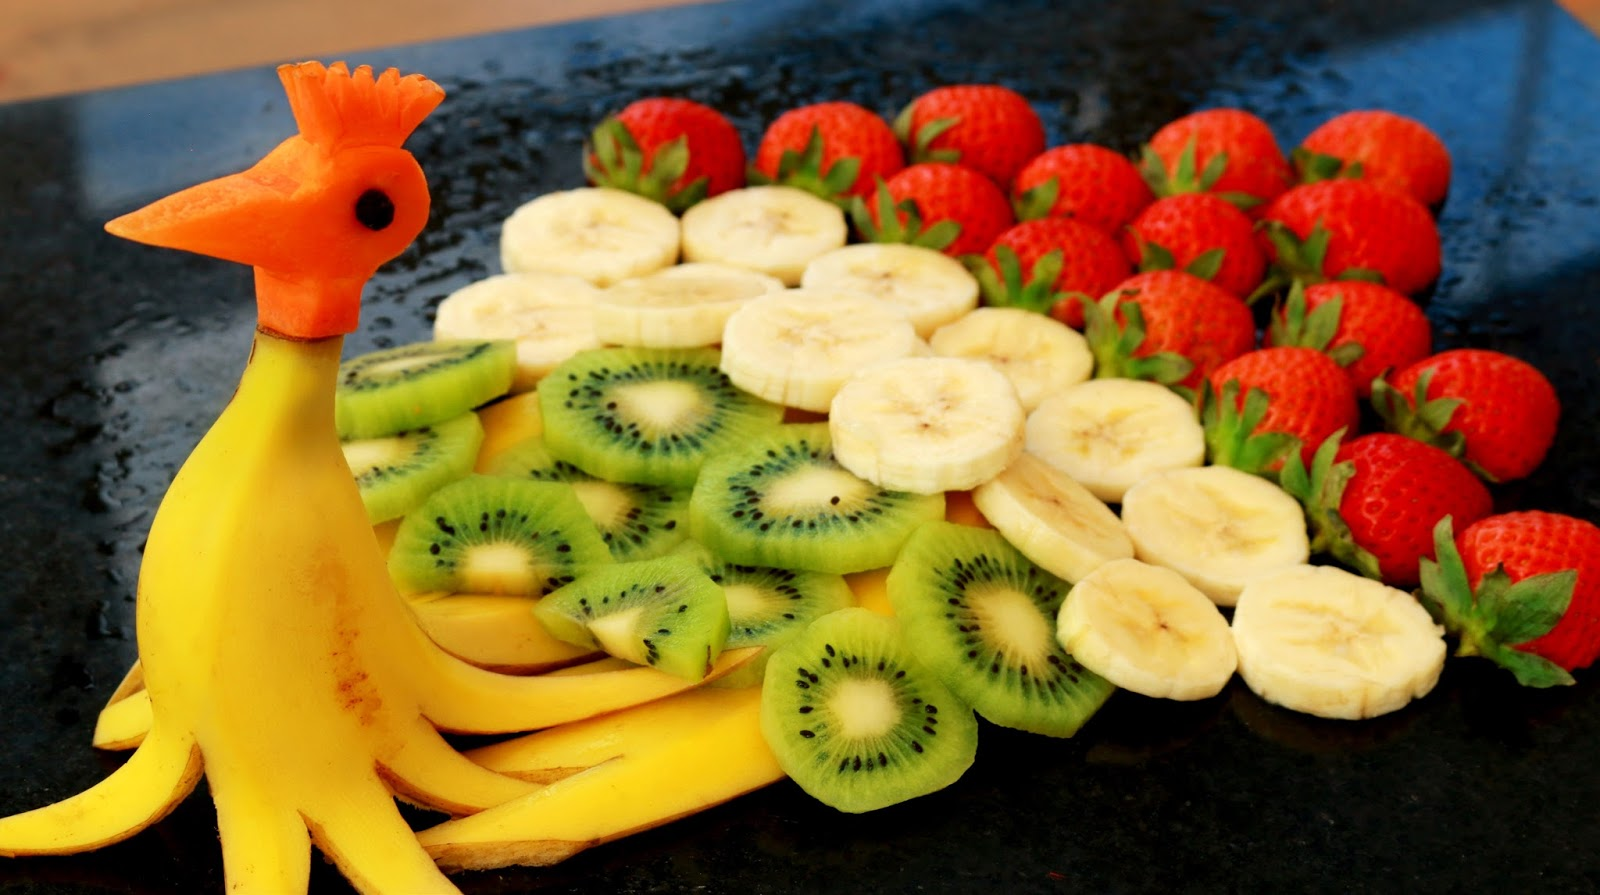 Amazing Fruit And Vegetable Wall Decor Photos - Wall Painting Ideas ...